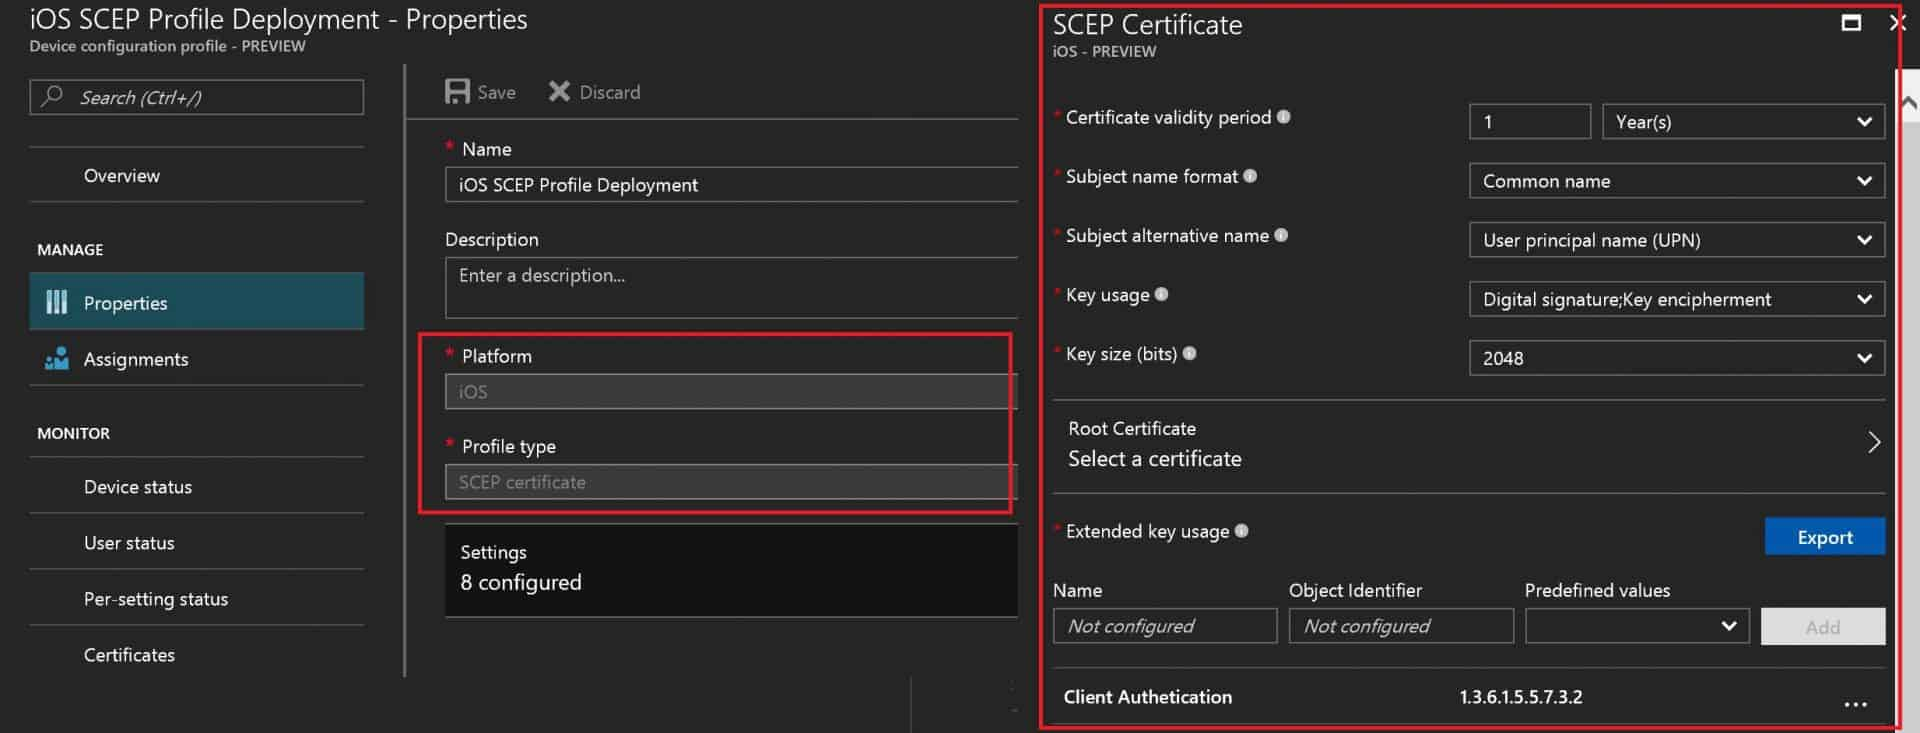 Intune - Create - Deploy SCEP Certificate to iOS Devices